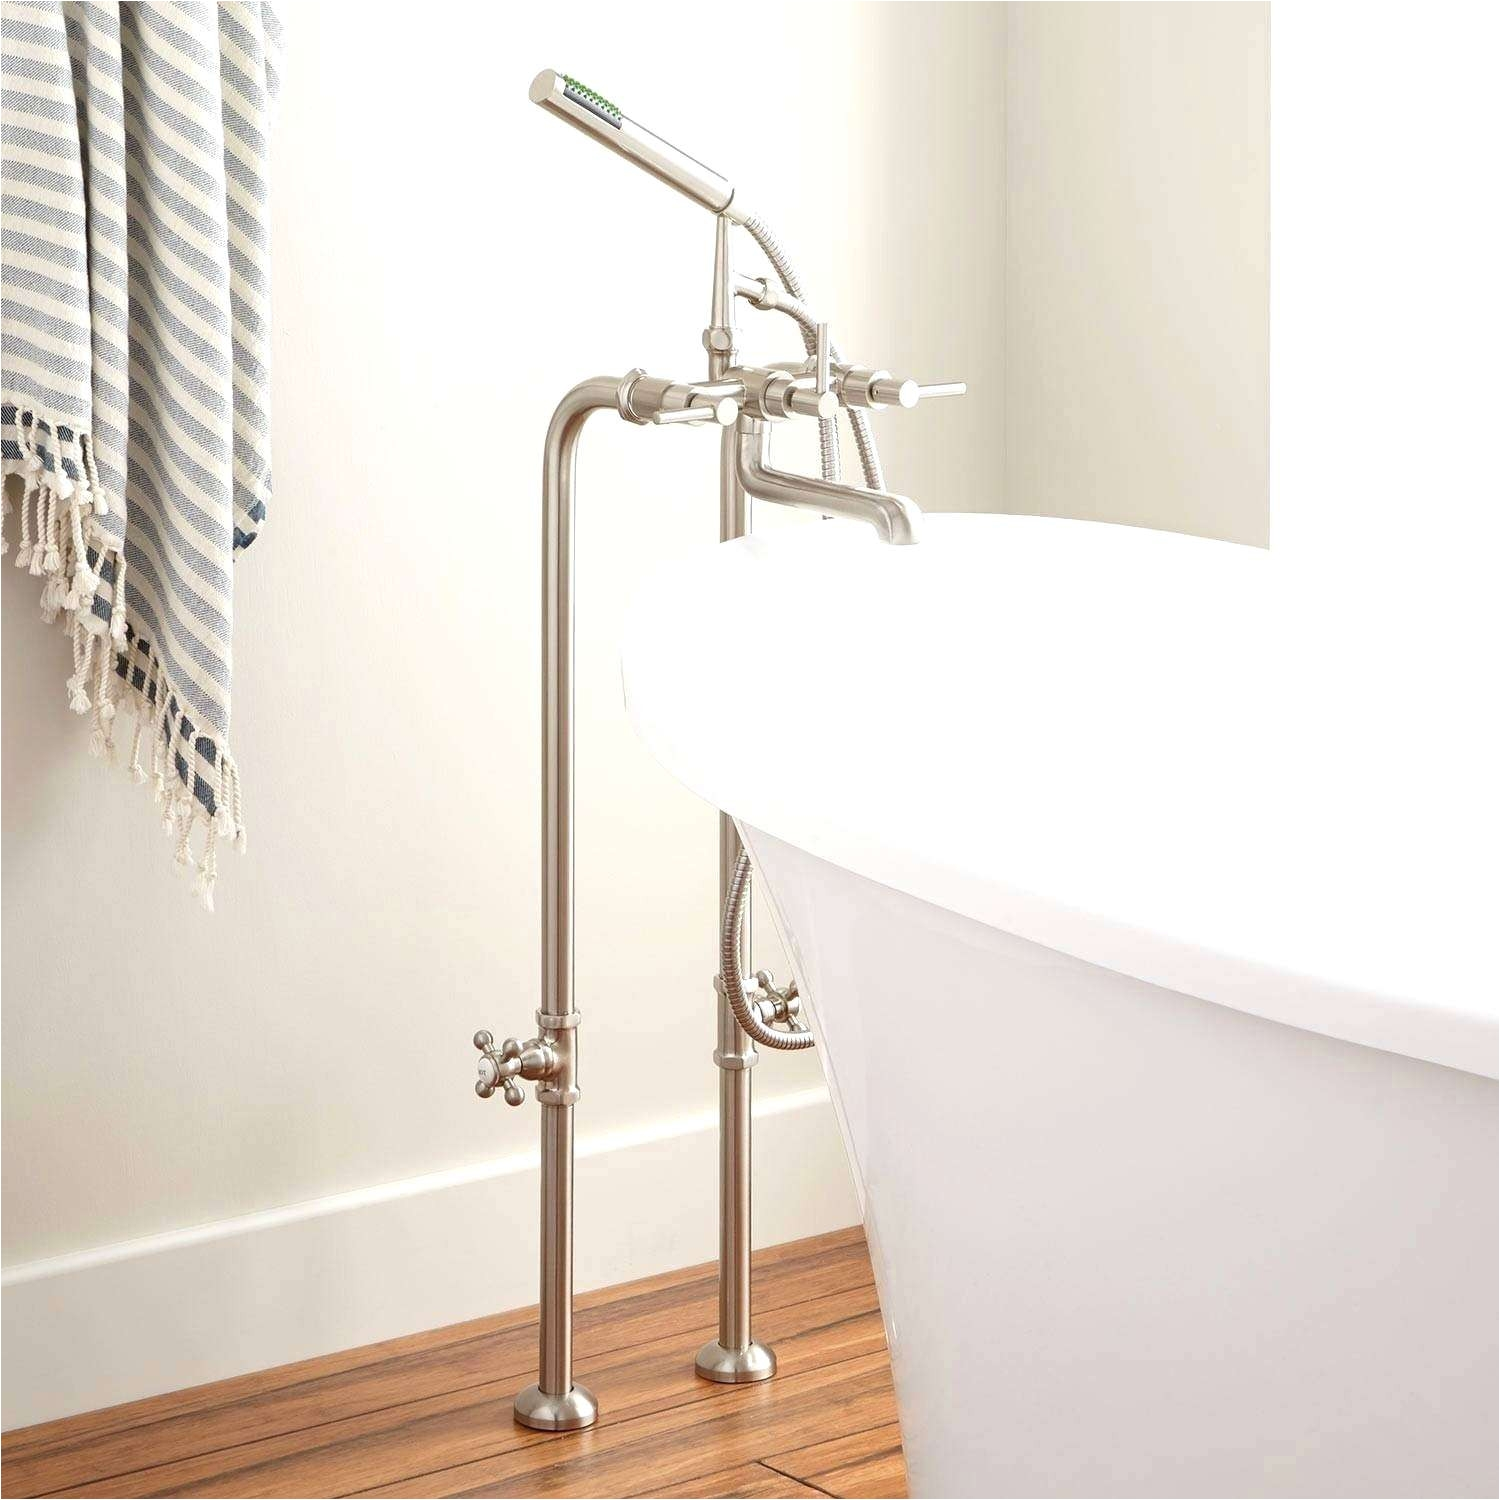 shower faucet set awesome lovely bathtub faucet set h sink bathroom faucets repair i 0d cool